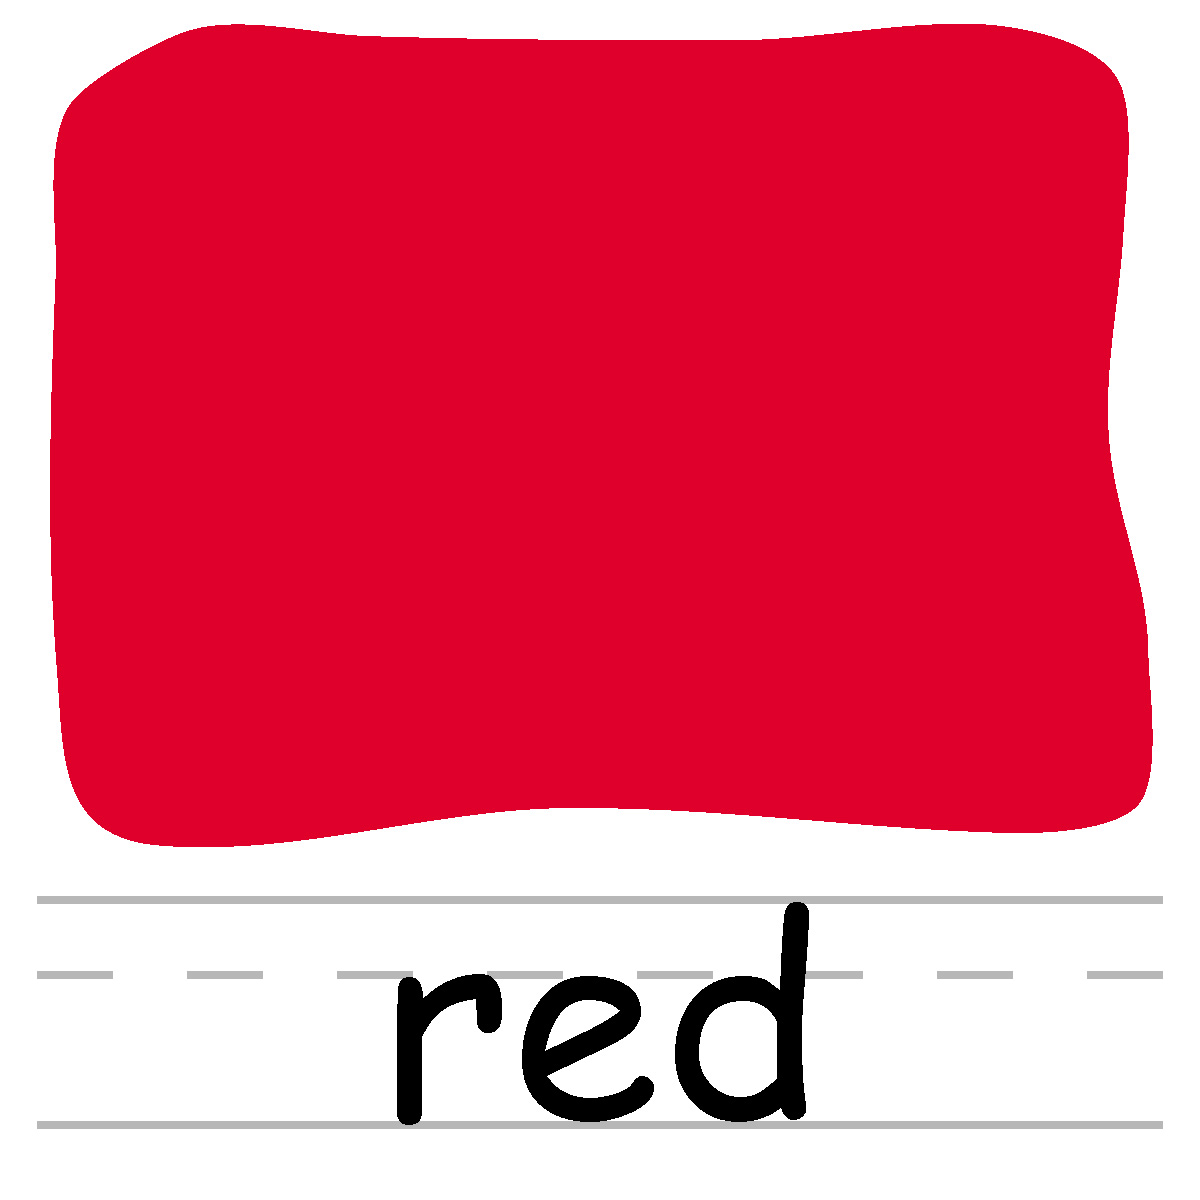 Red clipart #10, Download drawings